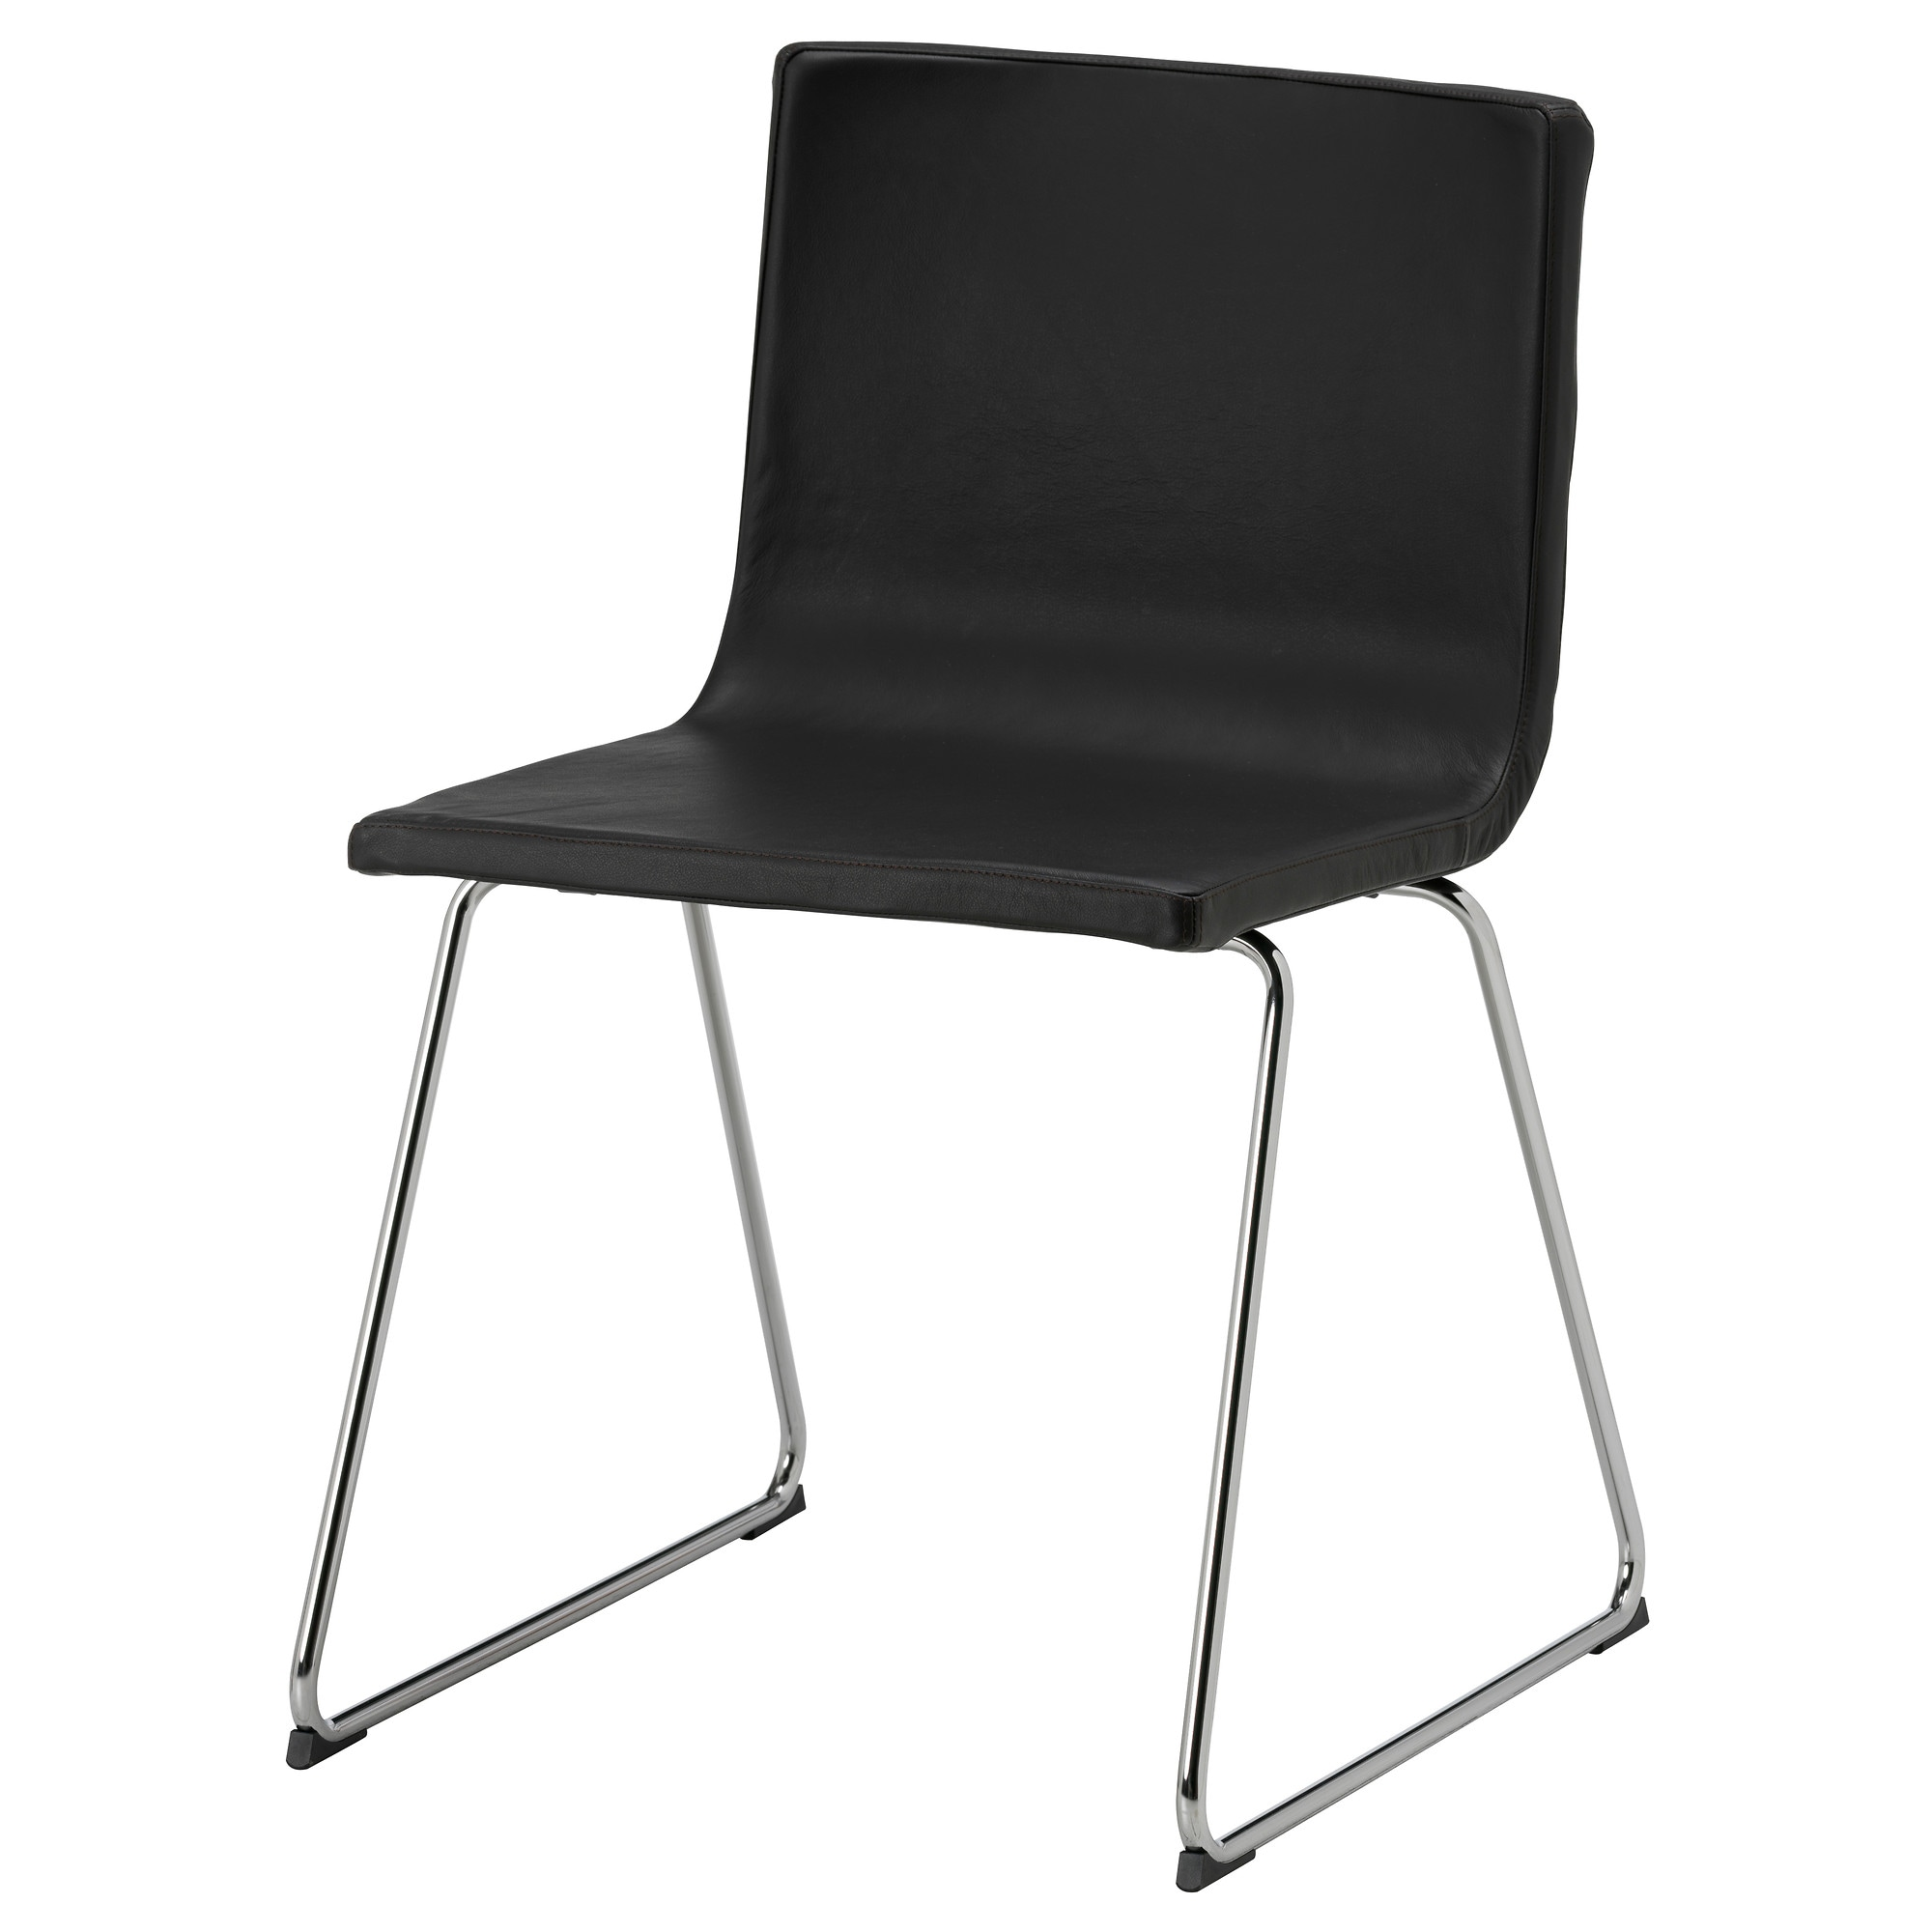 black furniture ikea. bernhard chair chrome plated mjuk kavat dark brown tested for 243 lb width black furniture ikea